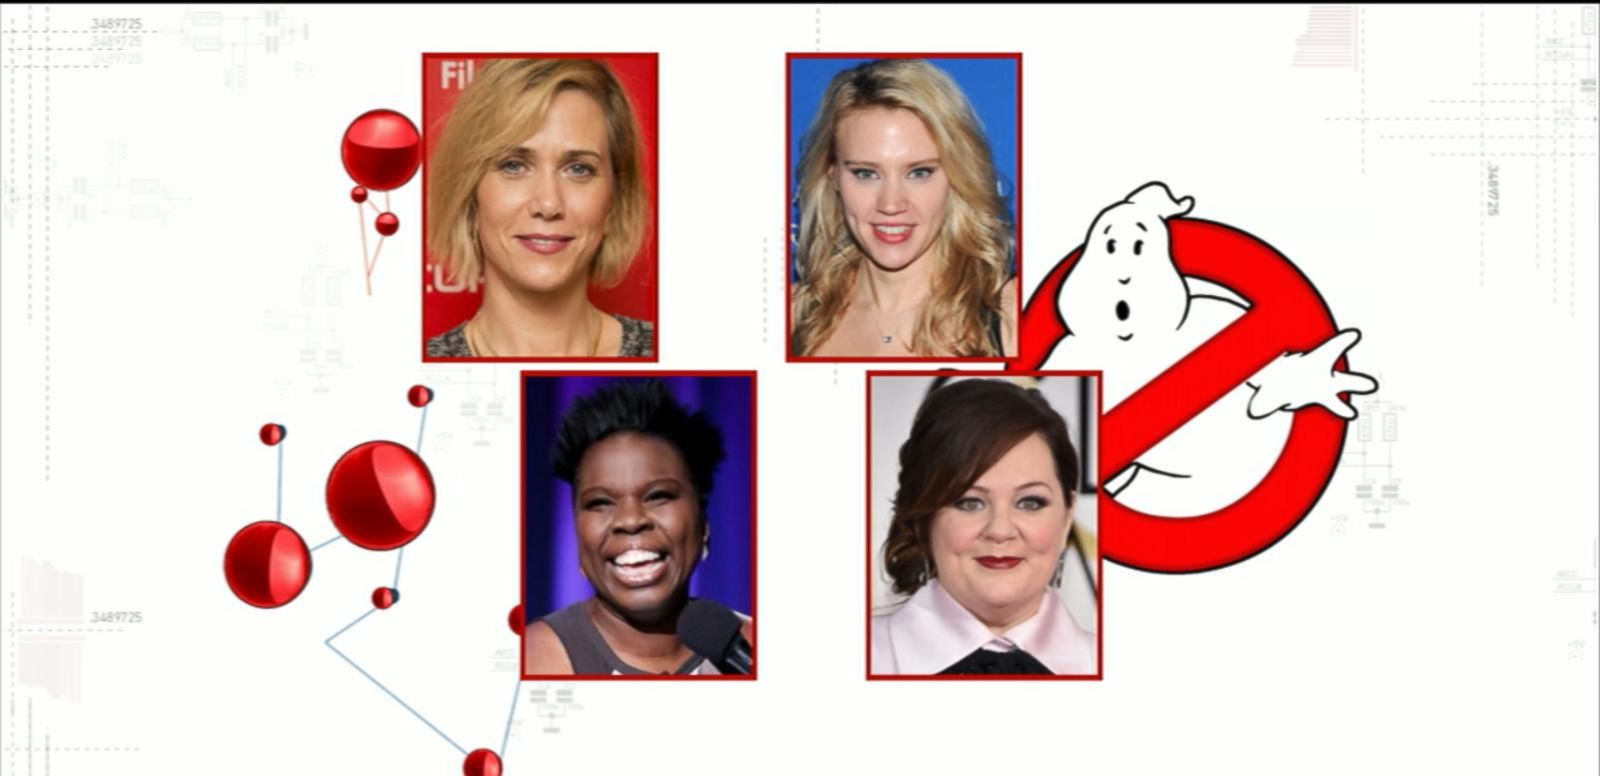 VIDEO: Cast of All-Female 'Ghostbusters' Movie Announced